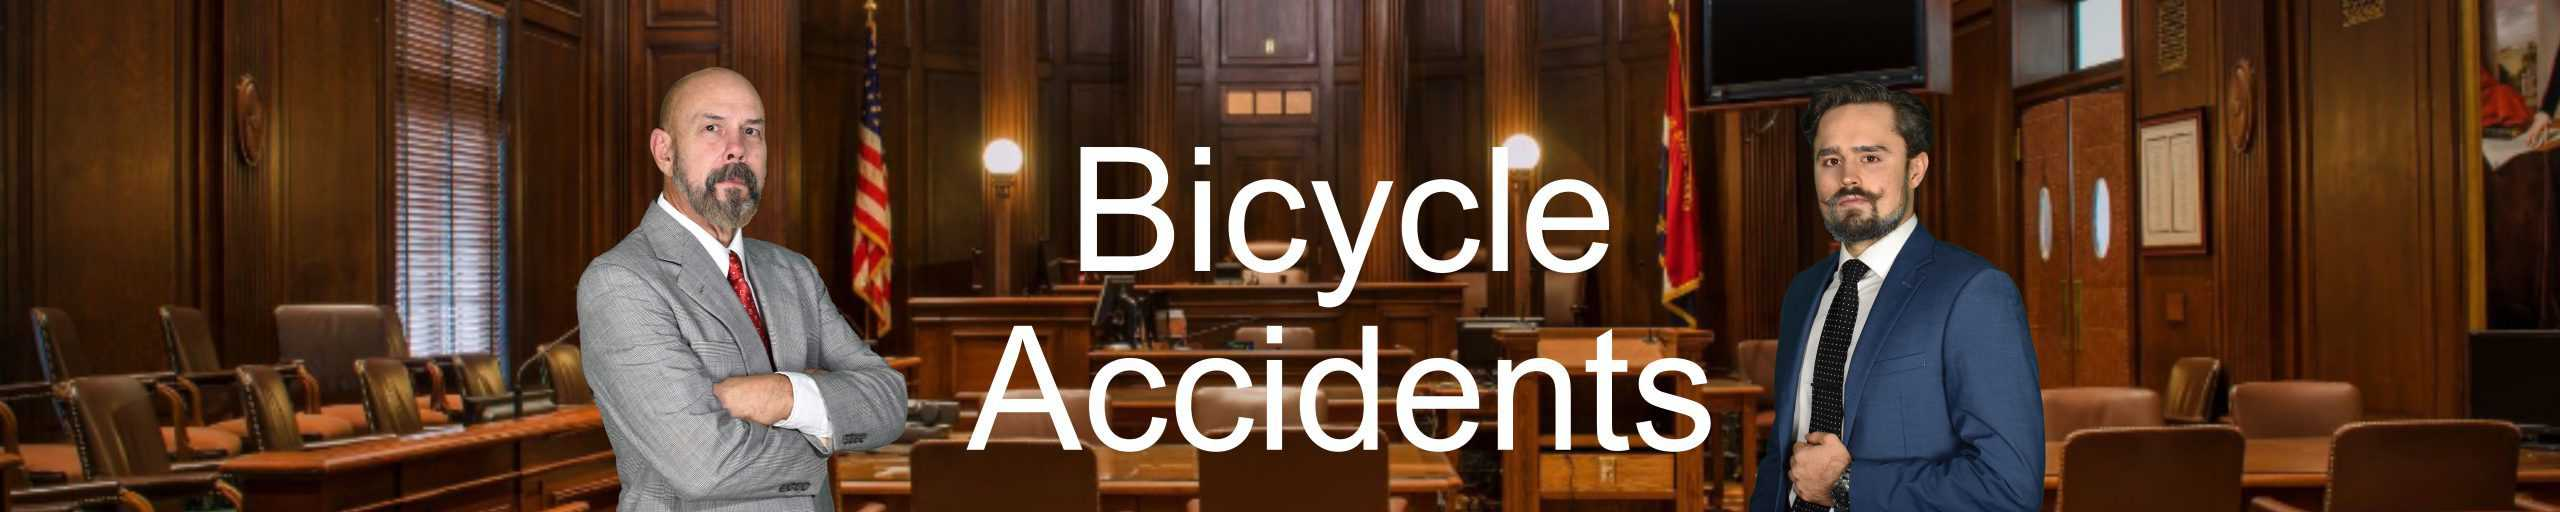 Bicycle-Accidents-Personal-Injury-Attorney-Lawyer-Hurt-Broken-Rear-End-Money-Settlement-Hospital-ER-Damage-Insurance-Company